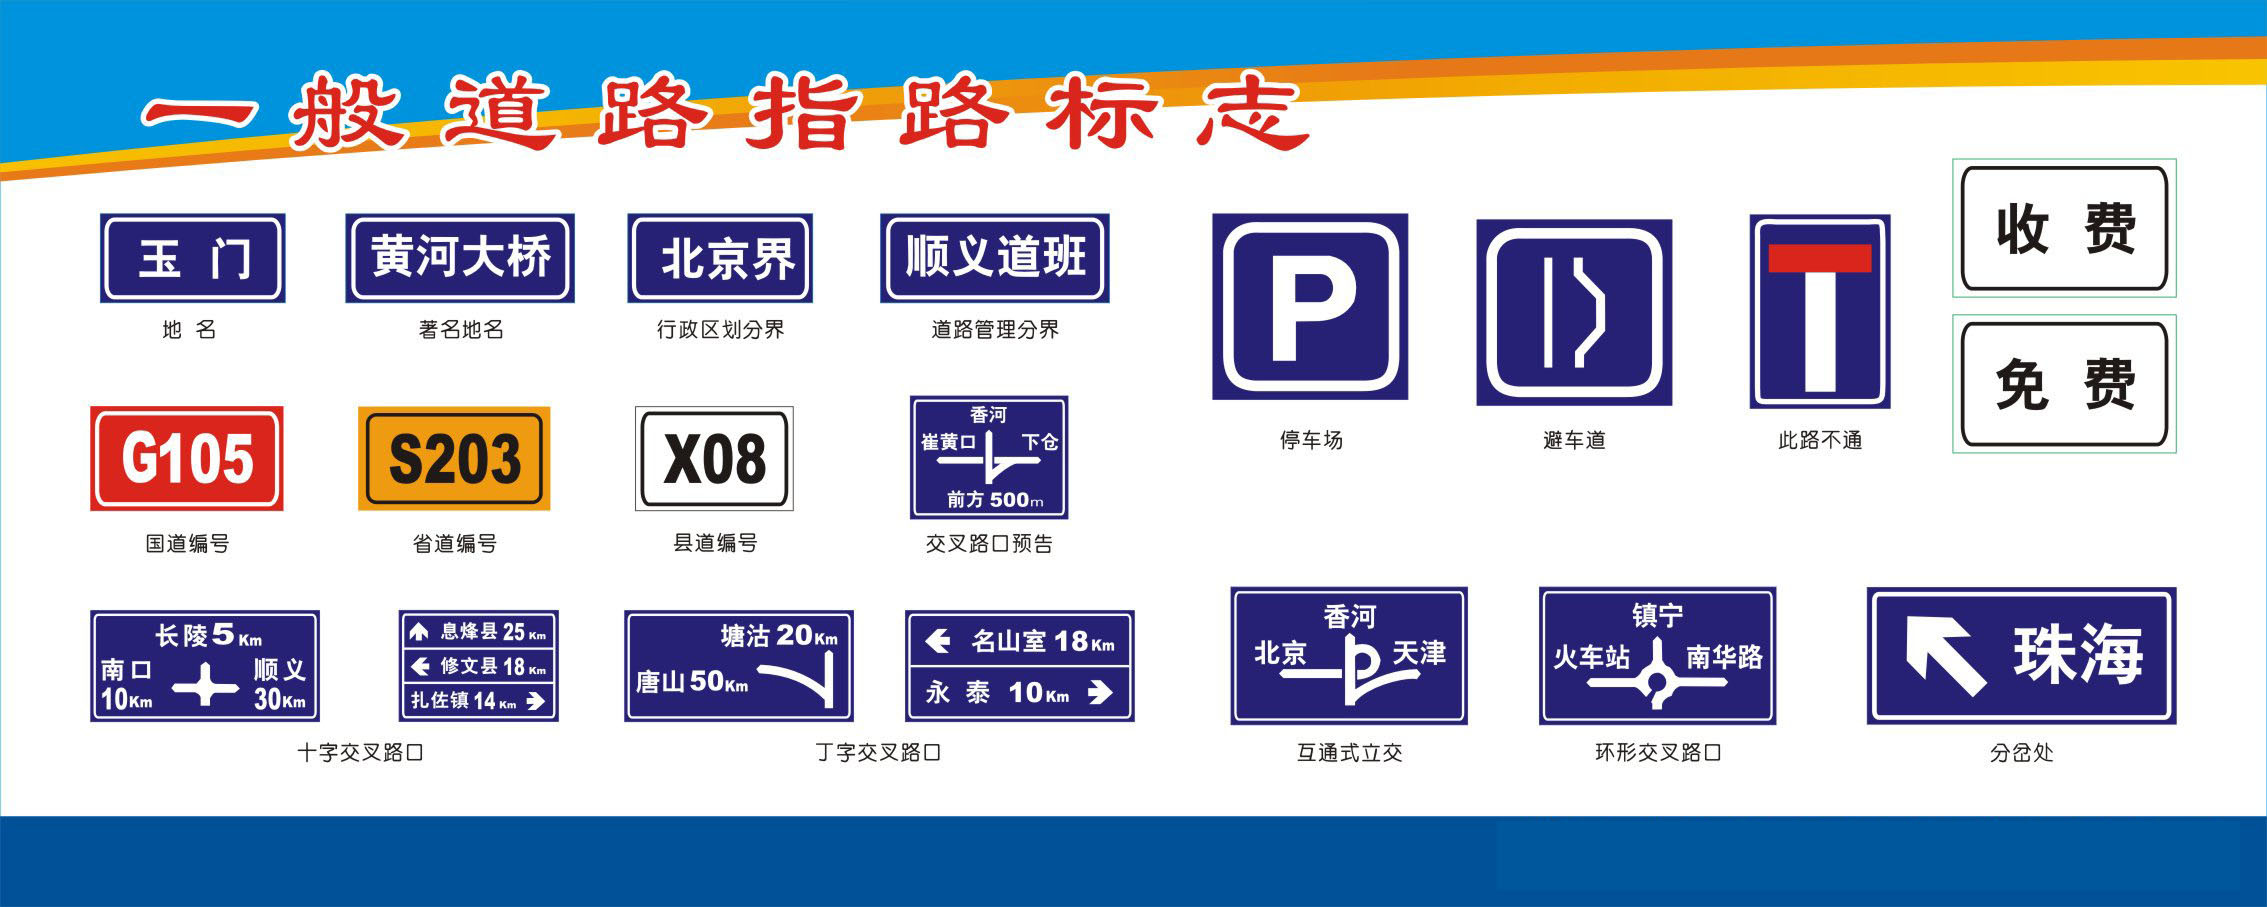 724 posters printed photo 1261 driving traffic signs and operational safety system 7 a a road signpost signs